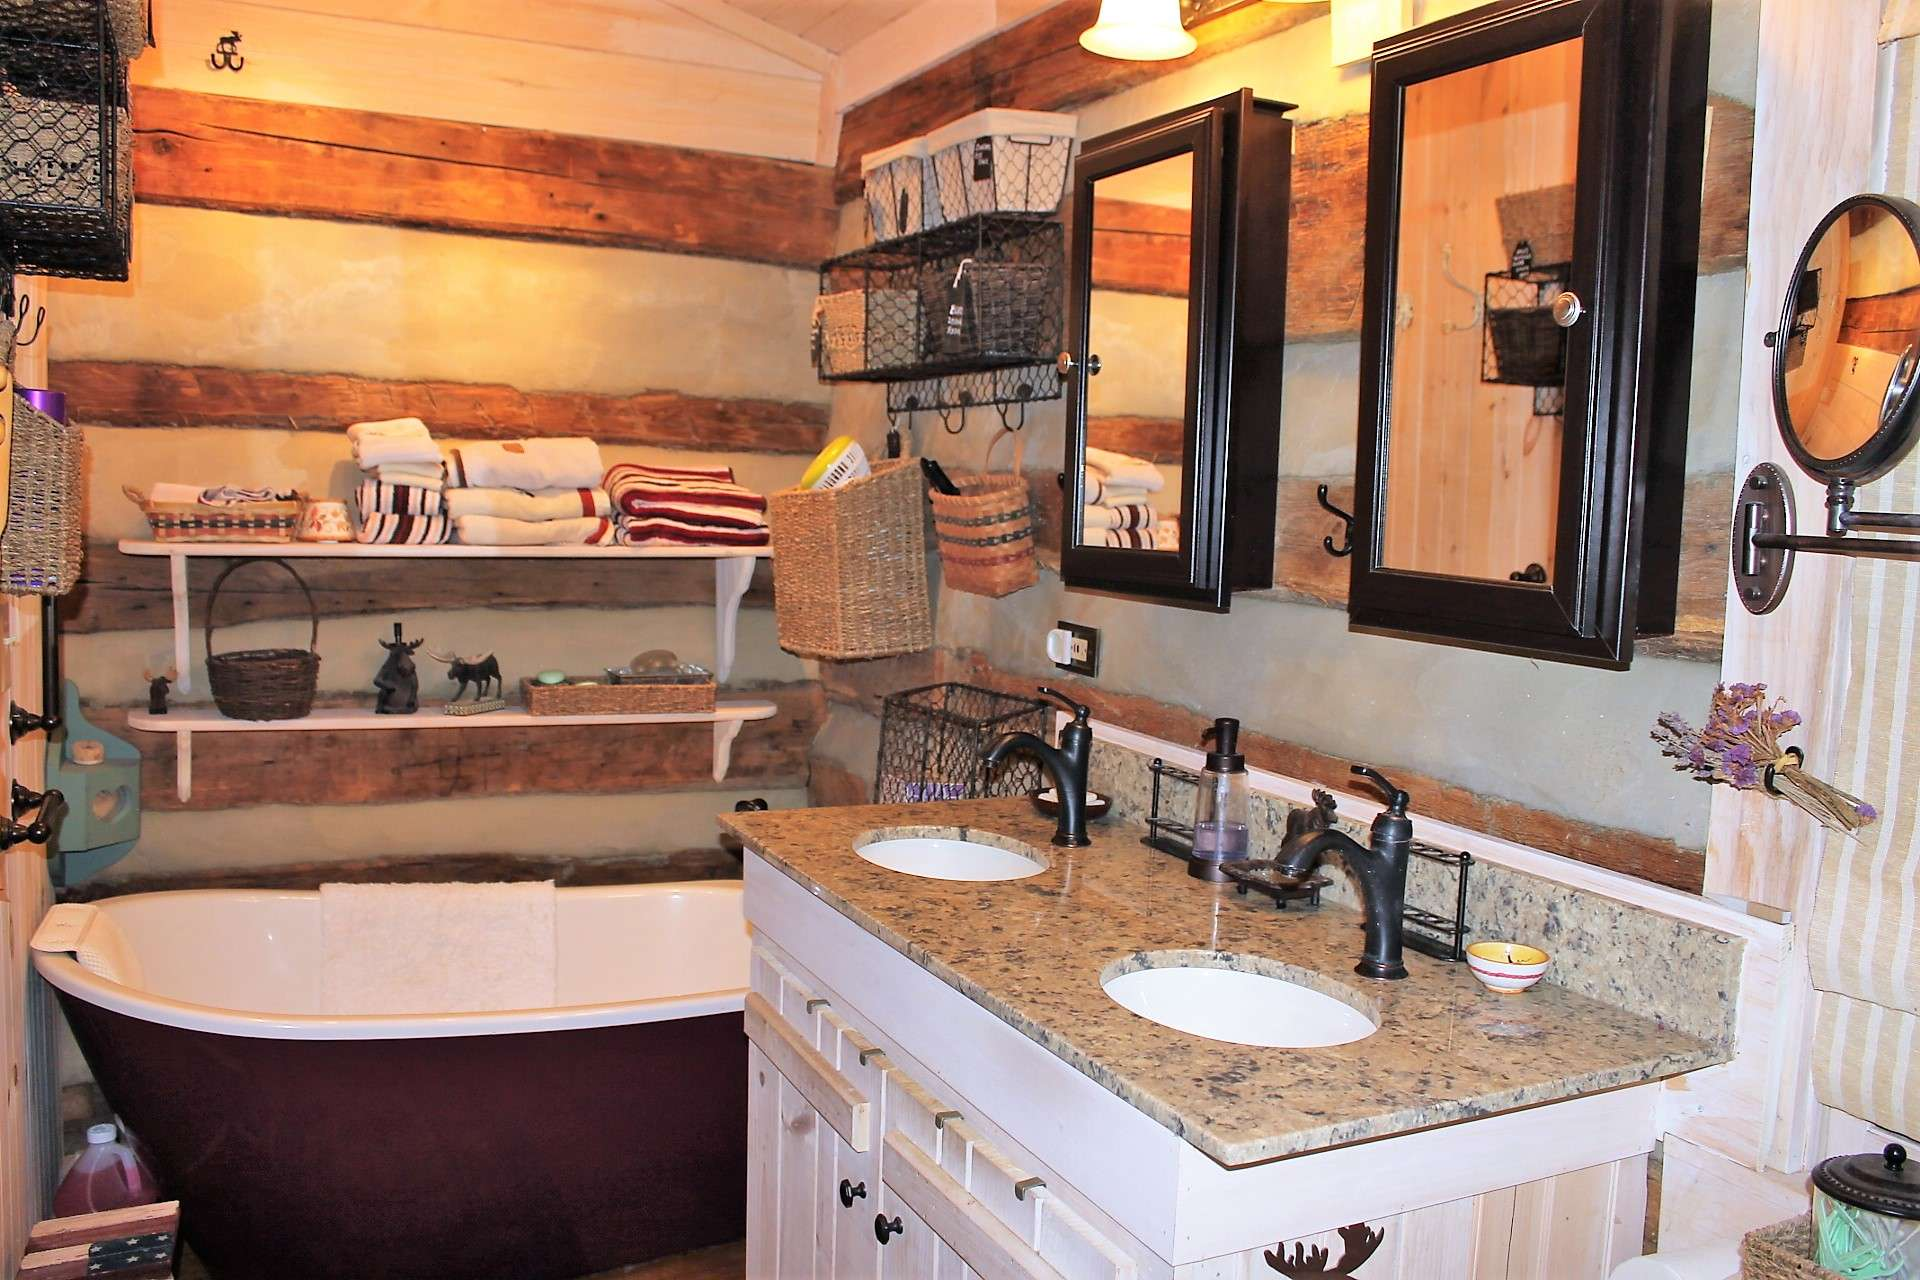 Master bath has dual sinks and a soaking tub to relax in after a day of hiking in the mountains.